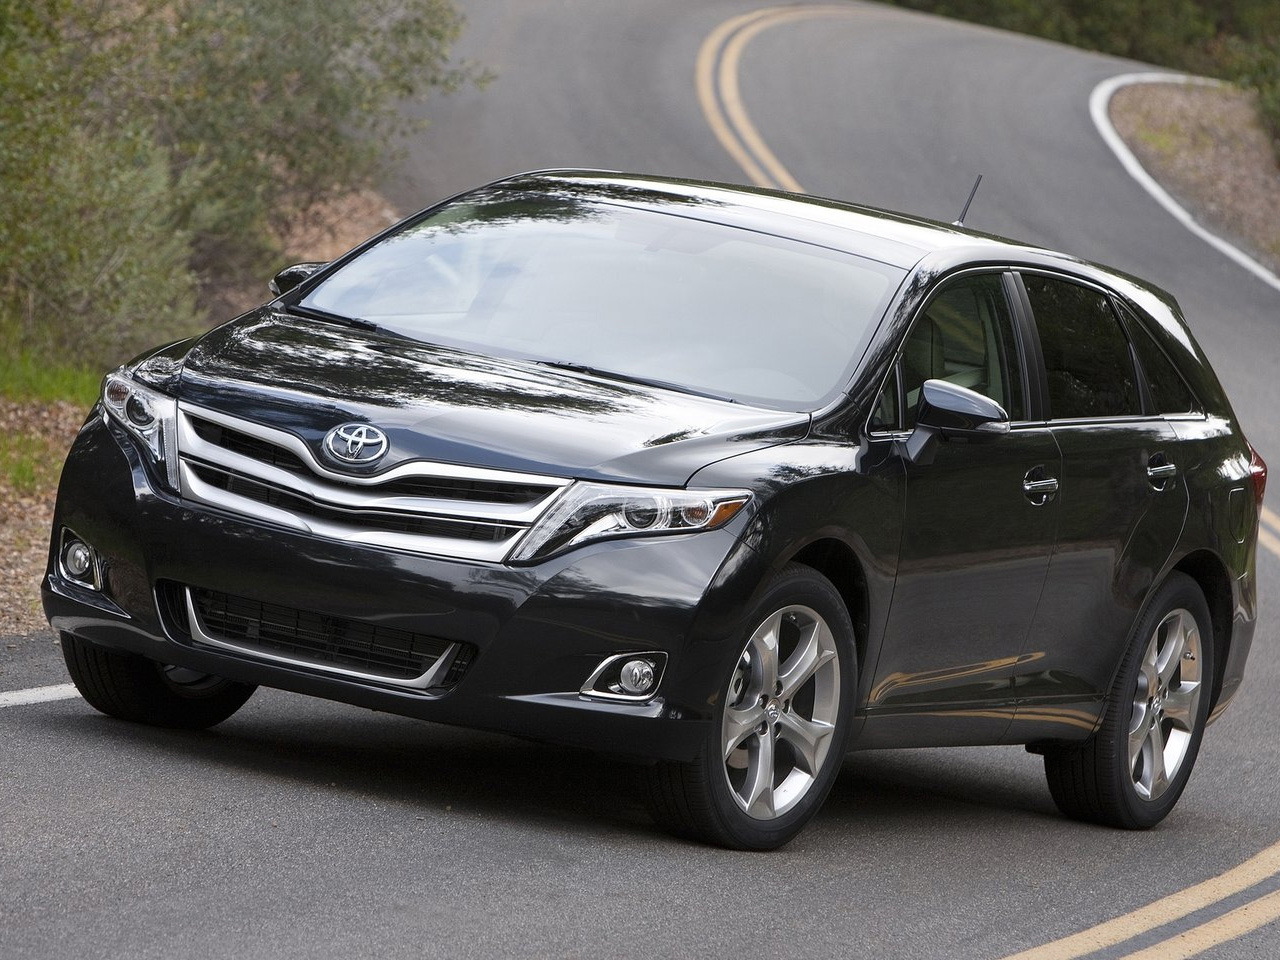 new style 2013 toyota venza release new car used car reviews picture. Black Bedroom Furniture Sets. Home Design Ideas